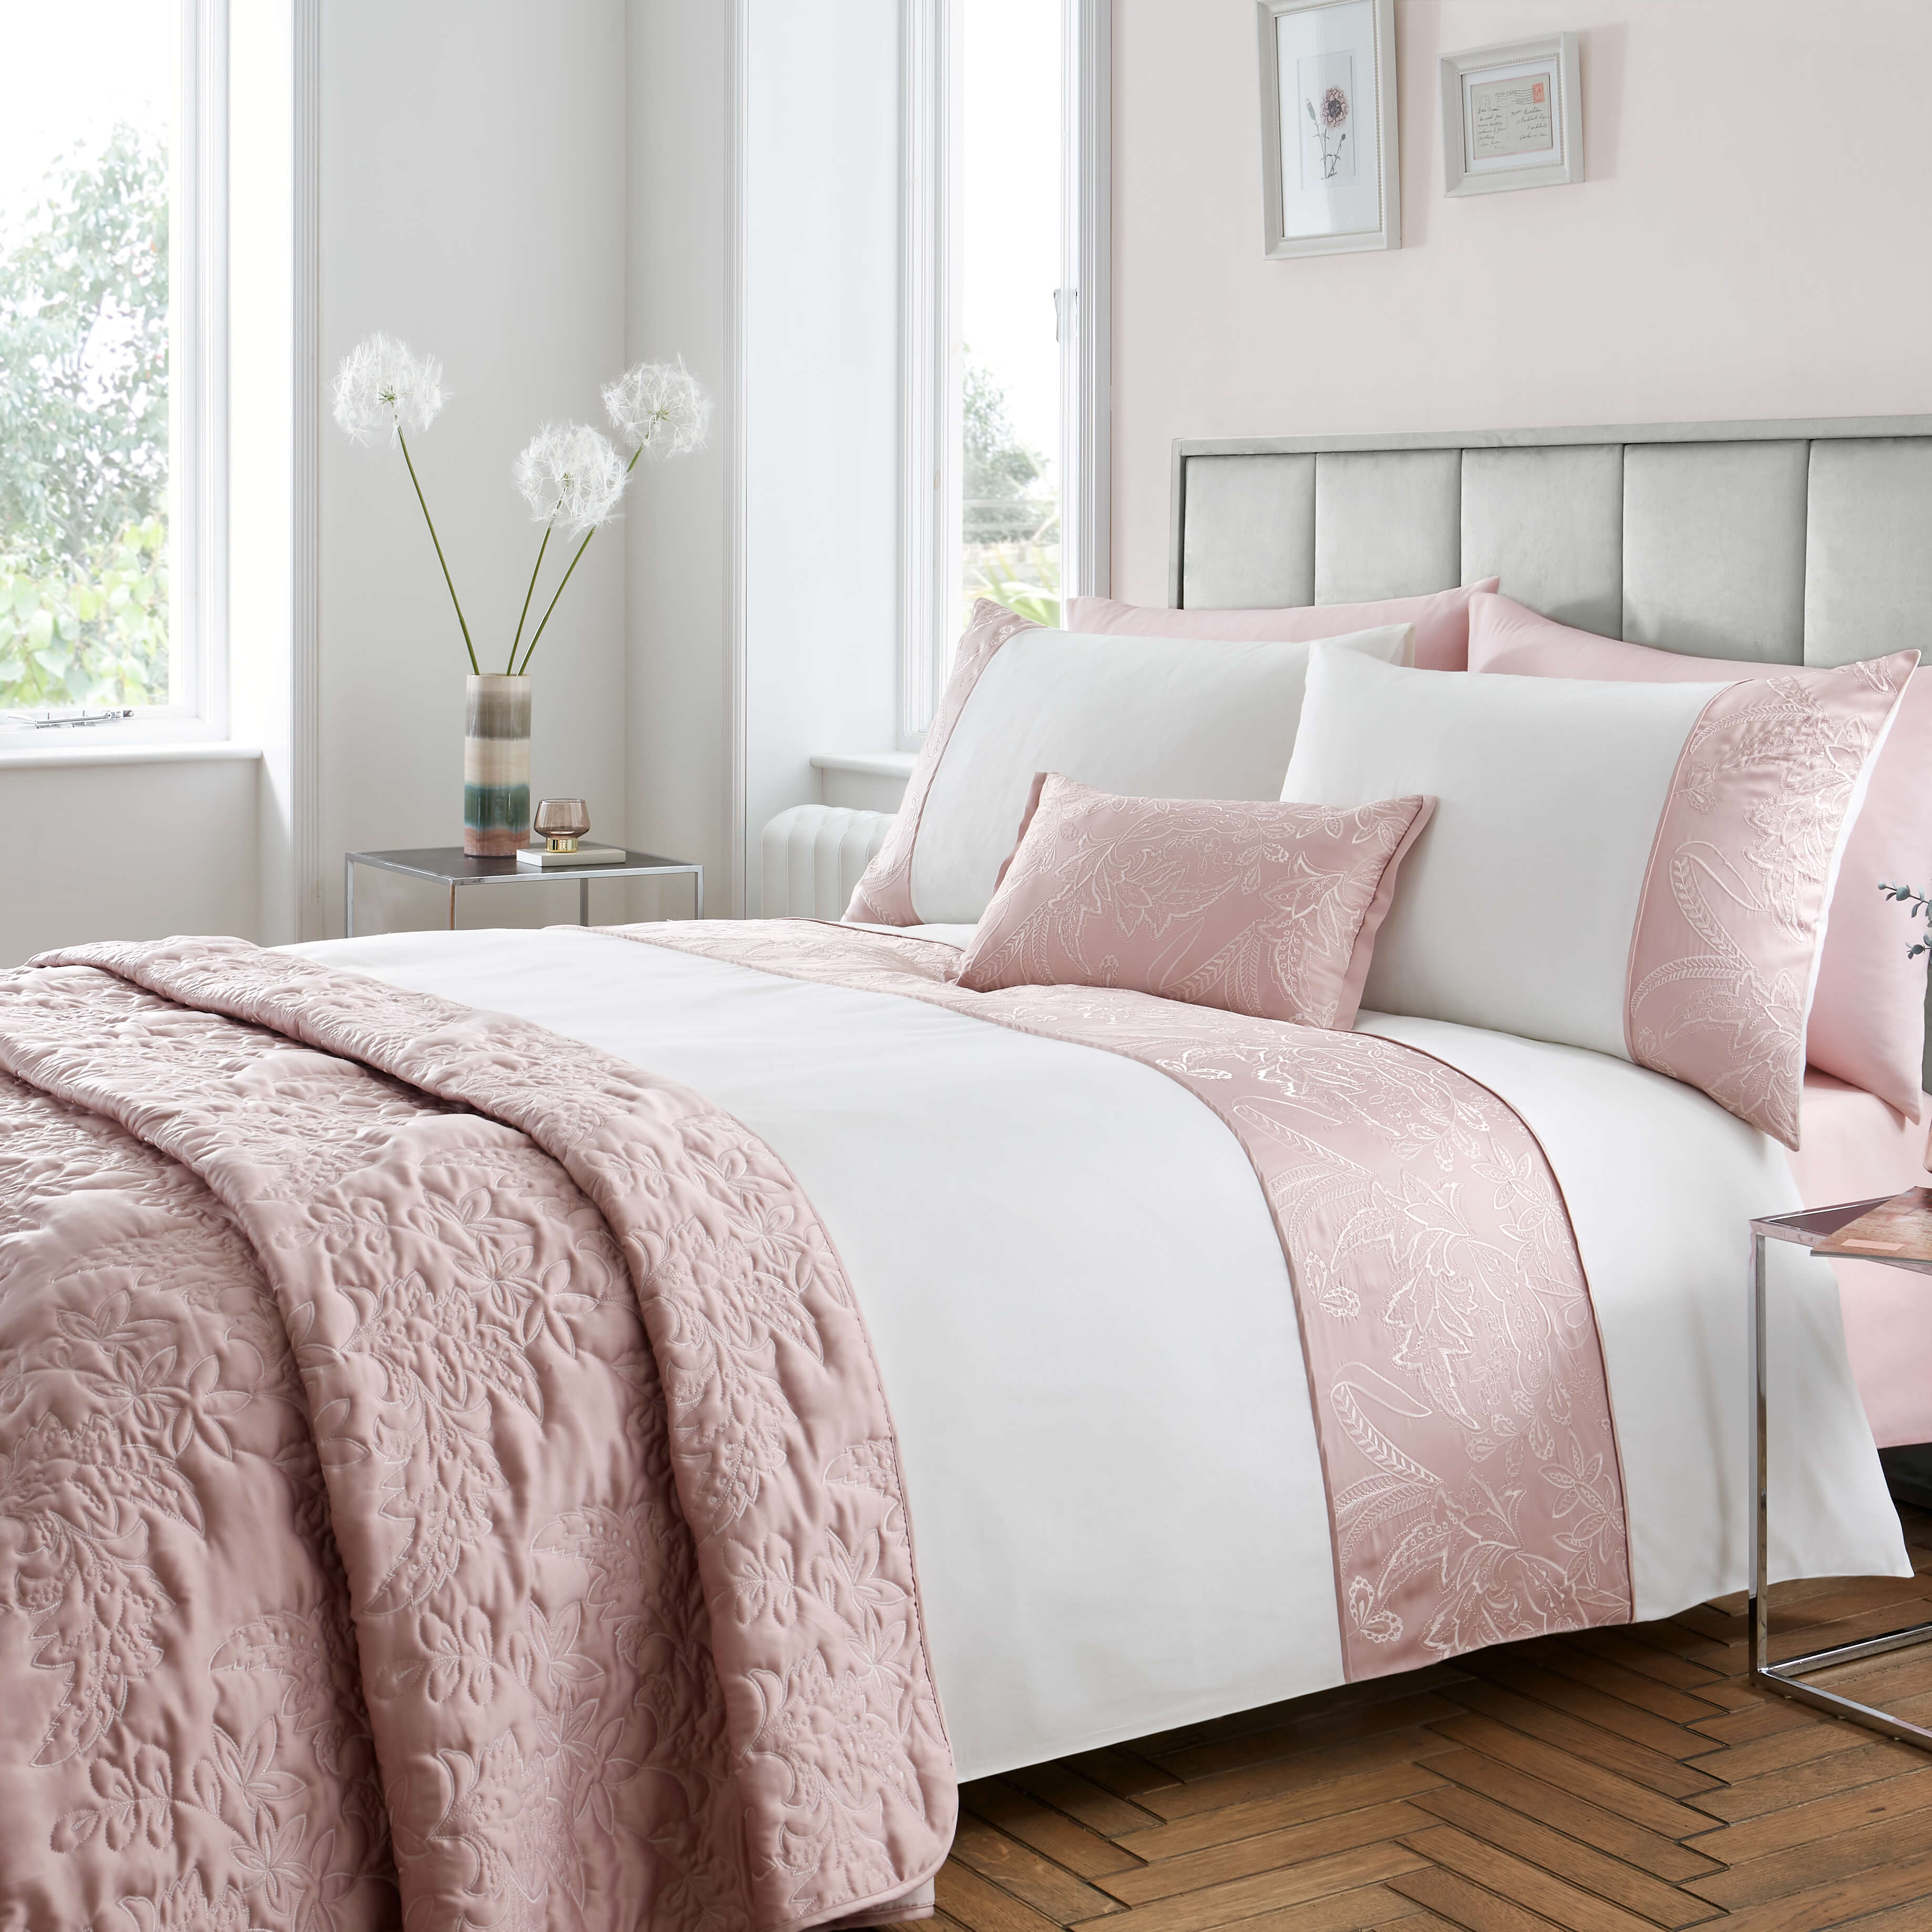 Olivia Marie Duvet Set Home Store More